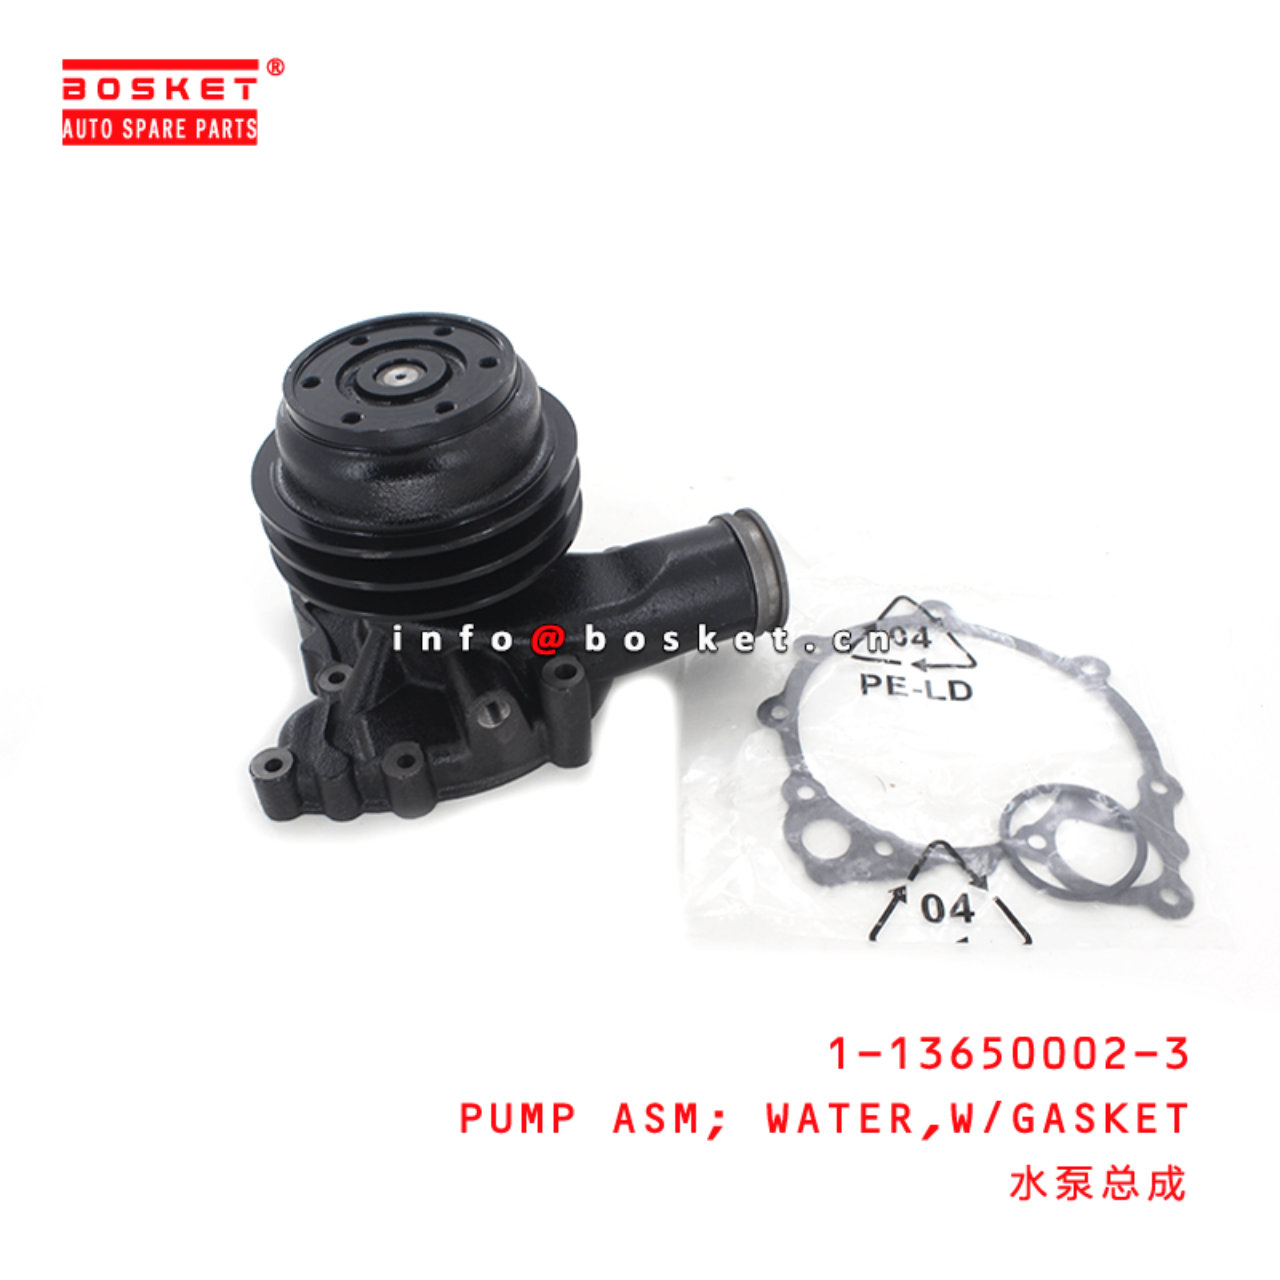 1-13650002-3 Water Pump Assembly With Gasket 1136500023 Suitable for ISUZU FVR 6SD1